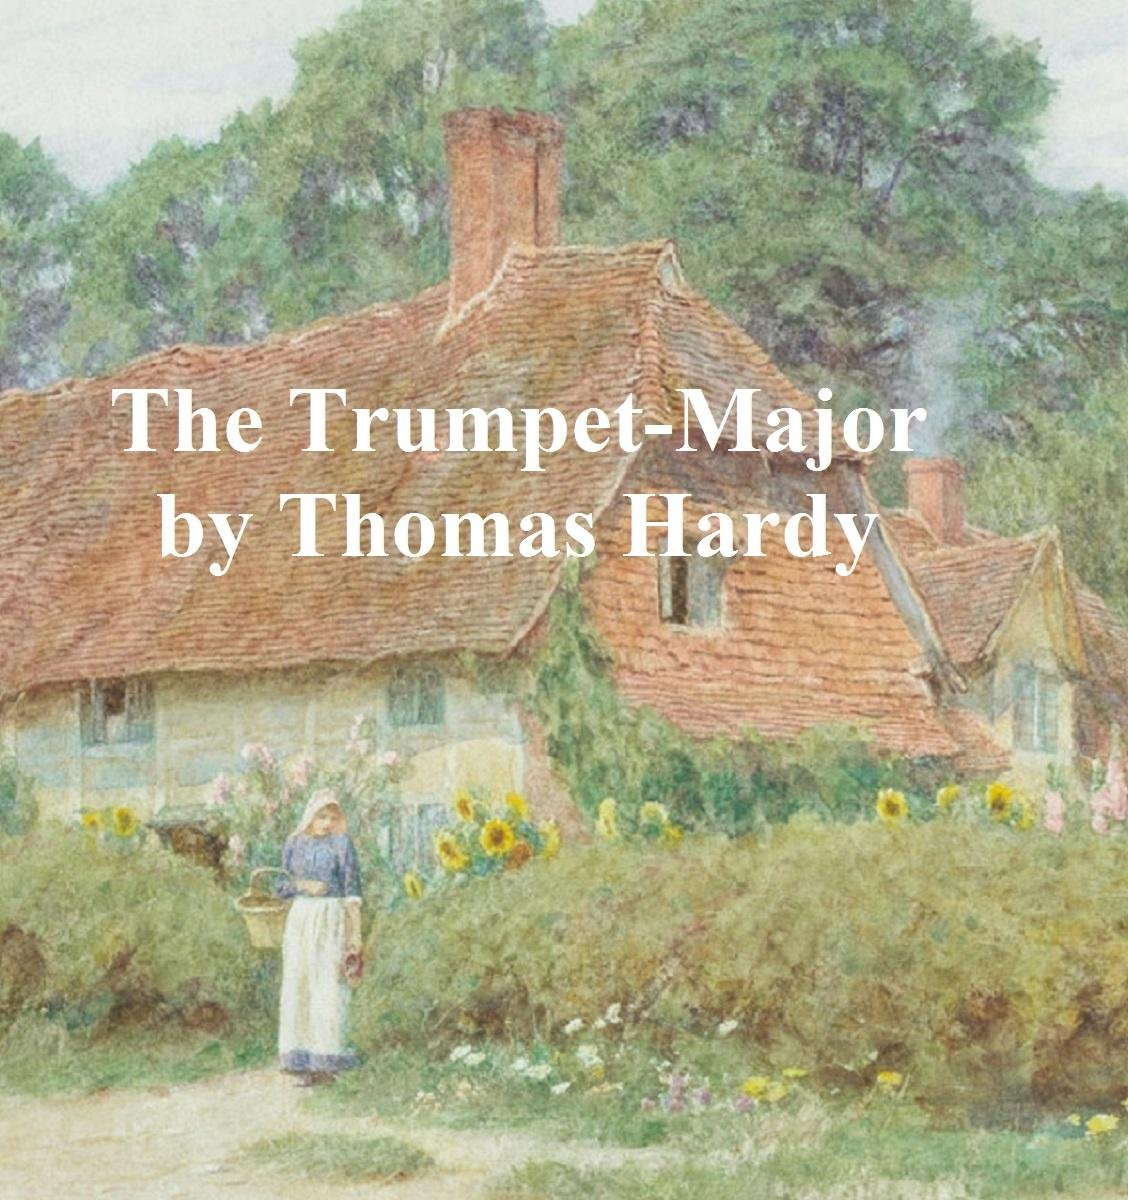 The Trumpet-Major: Being a Tale of the Trumpet-Major, John Loveday, a Soldier in the War with Buonaparte